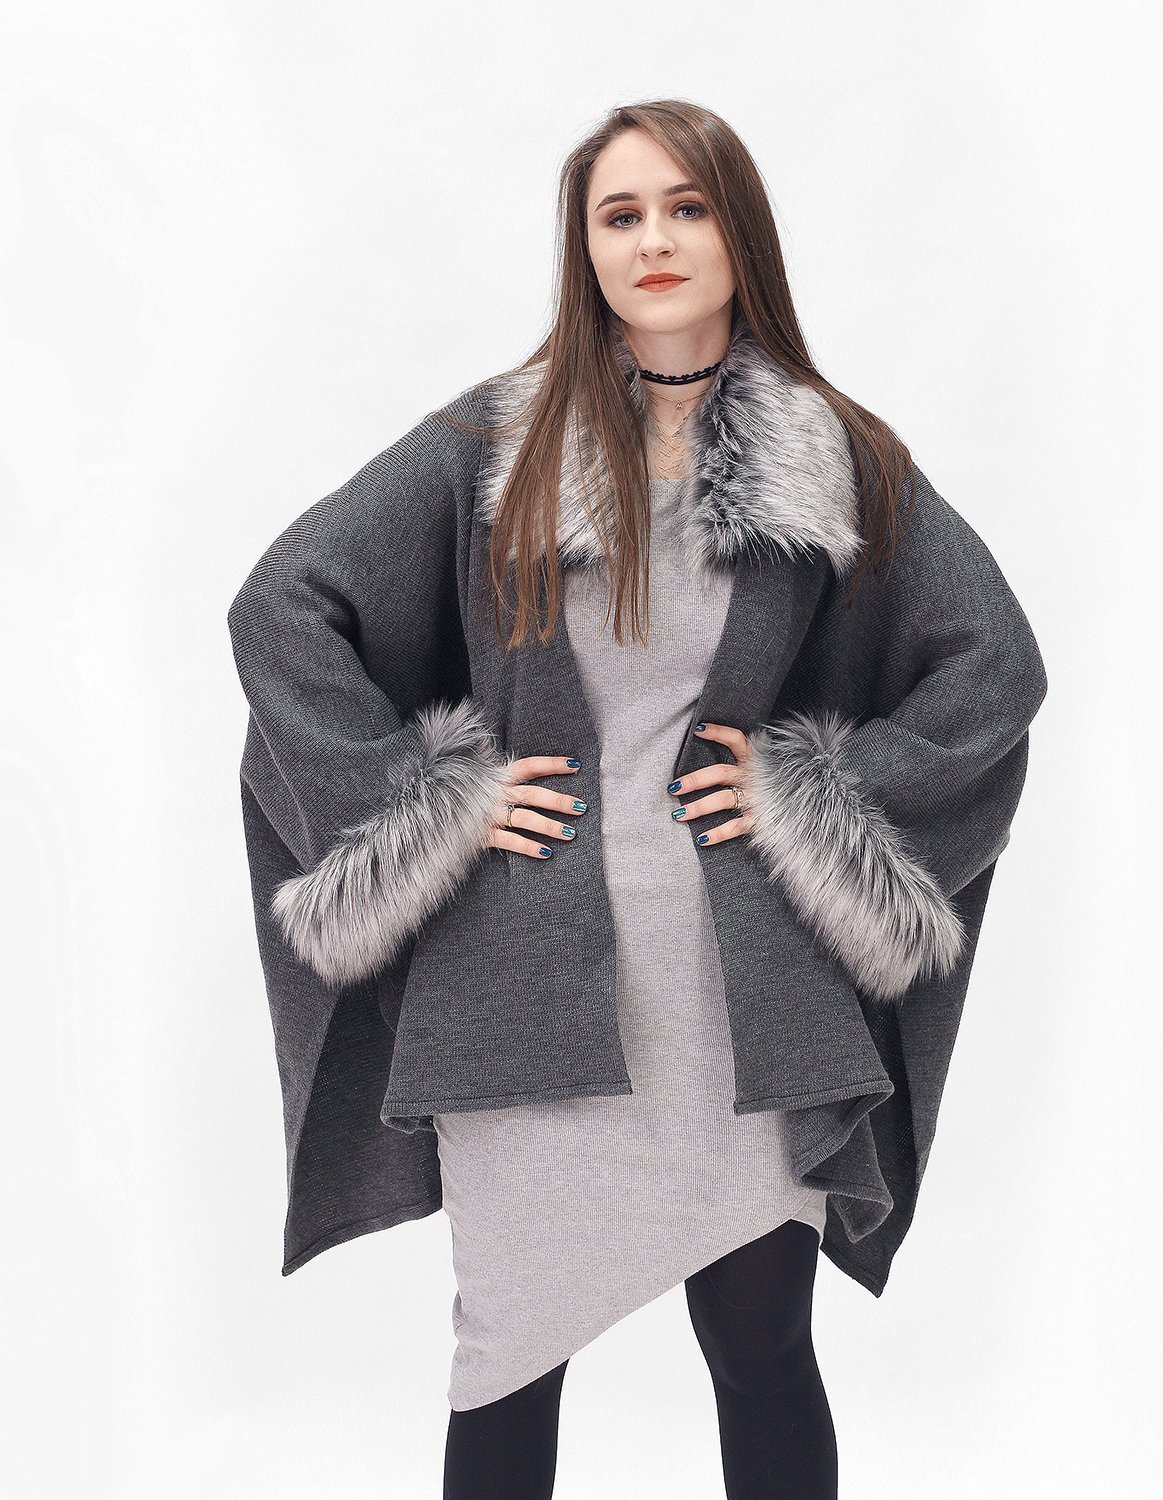 Elegant grey and silver brown half-woolen cardigan with high quality faux fur - made by Irena Fashion